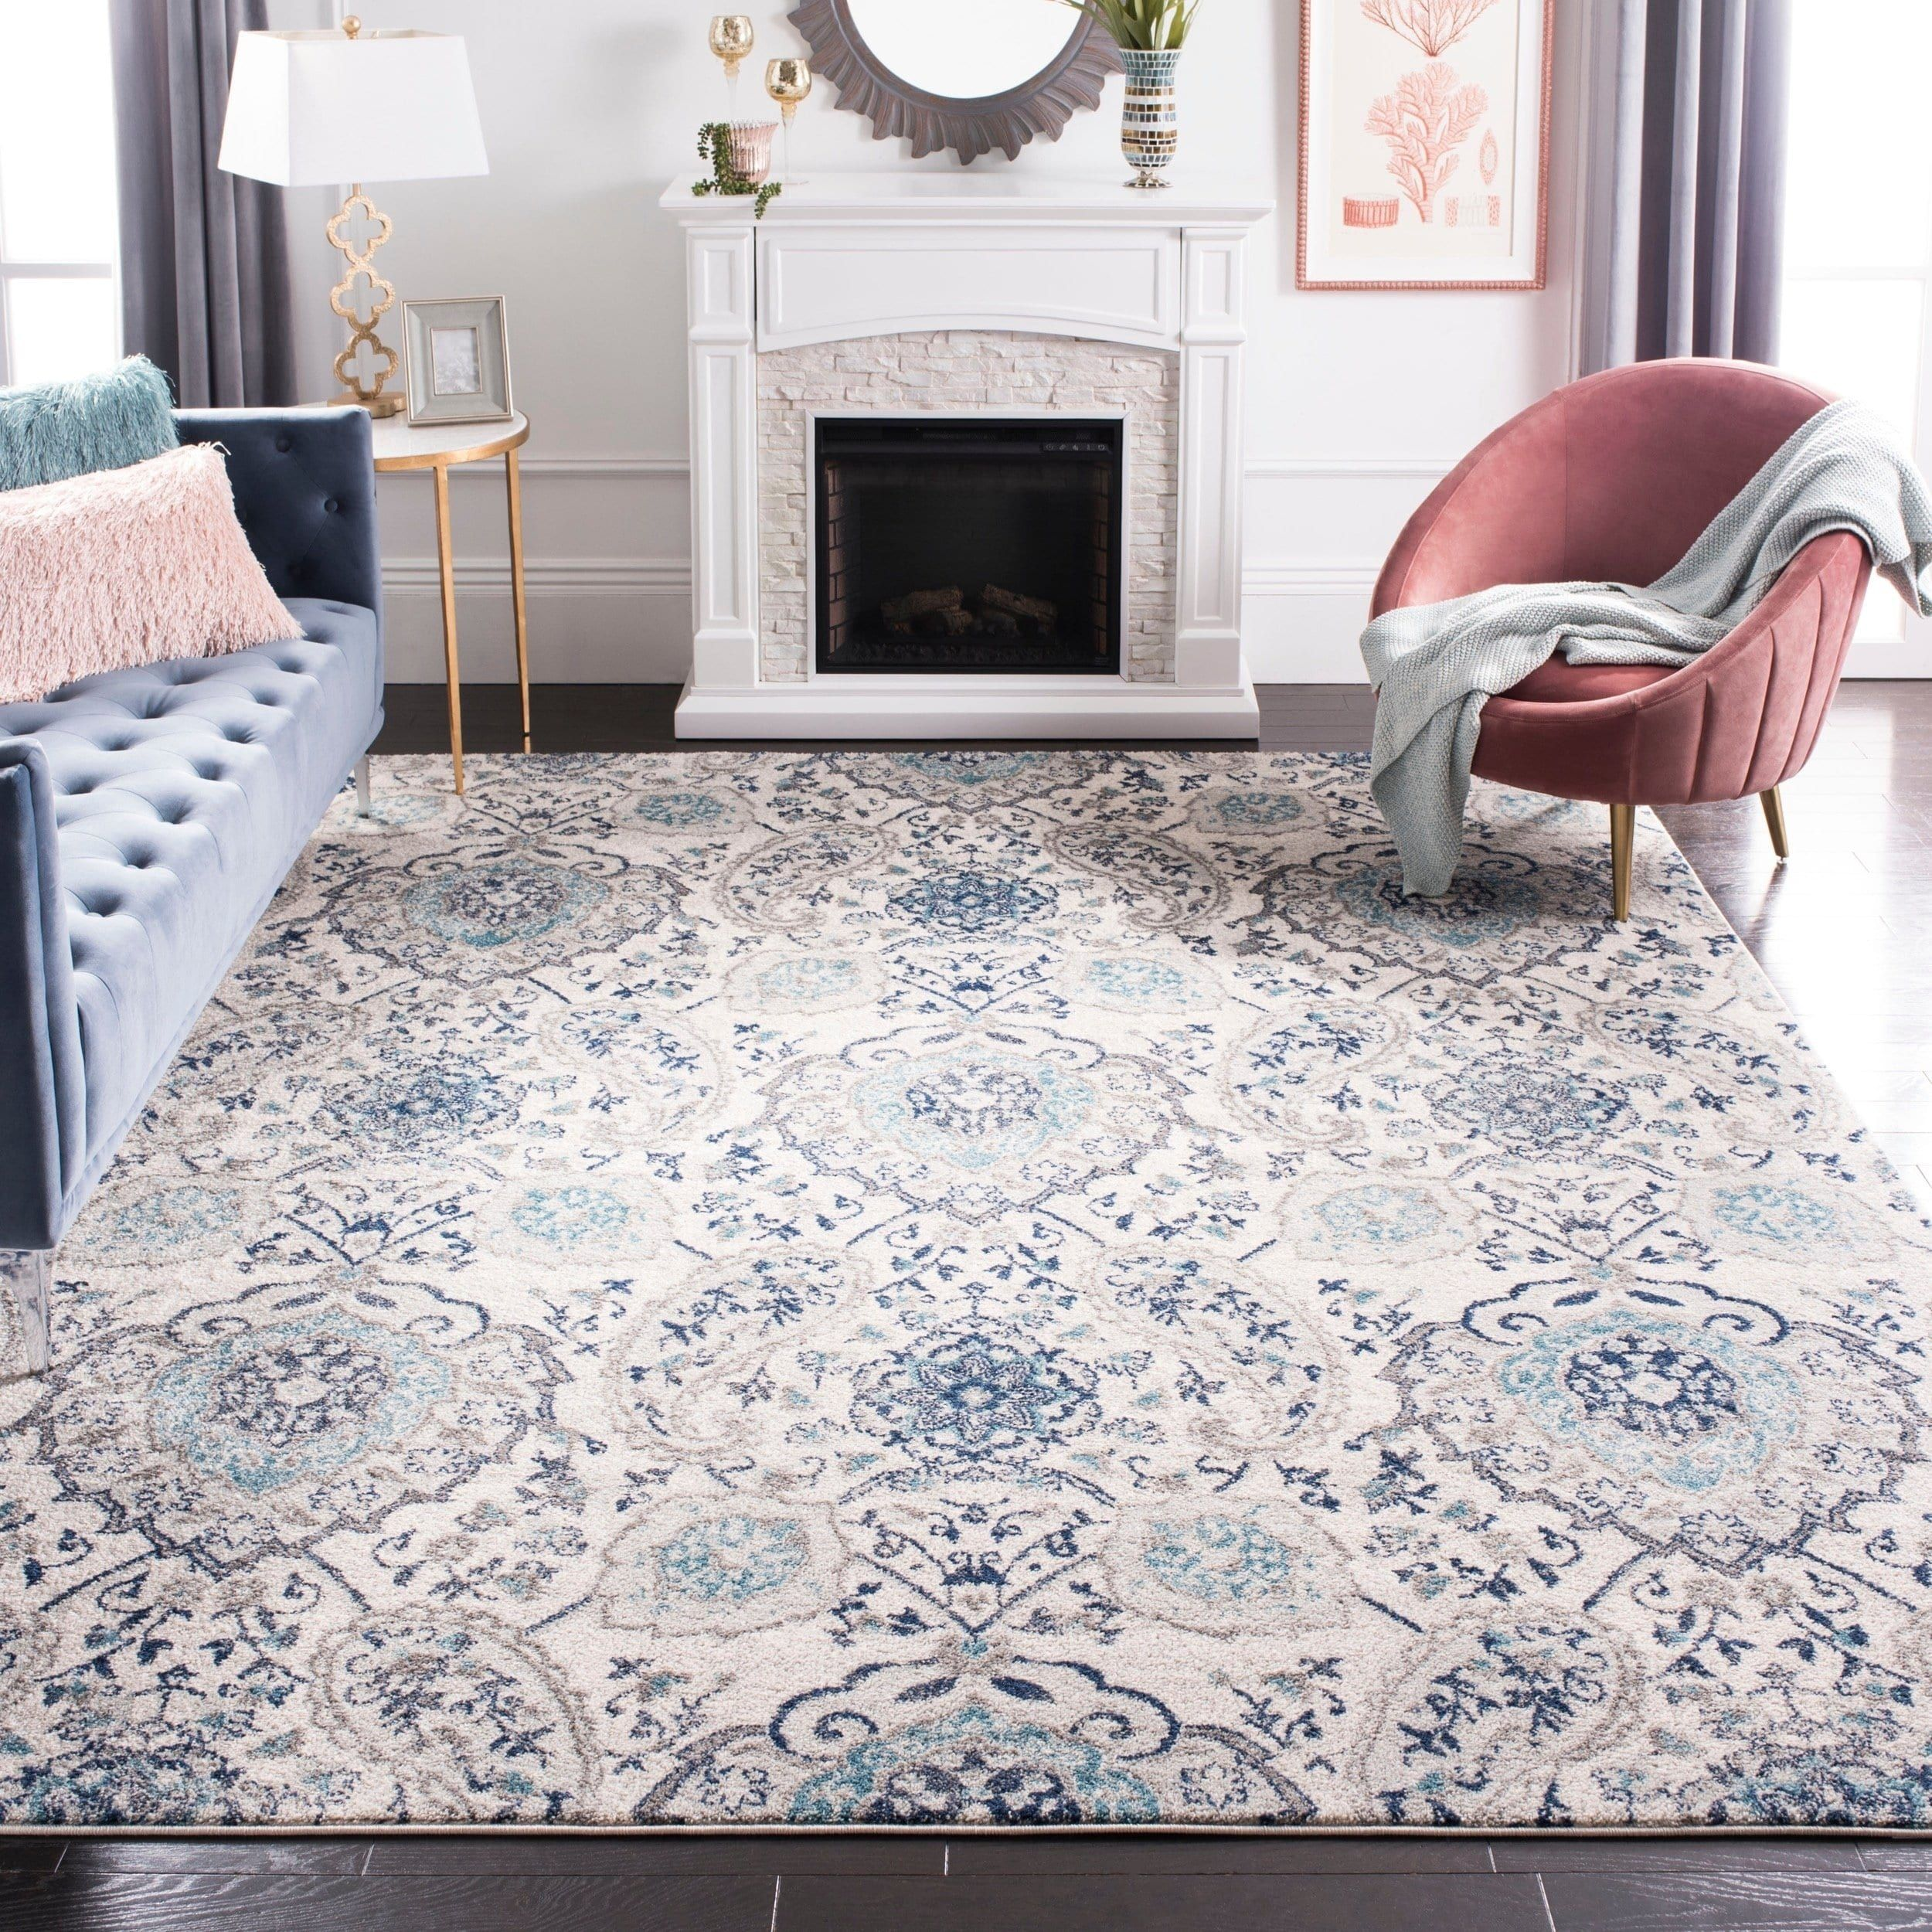 The 8 Best Overstock Rugs Of 2020